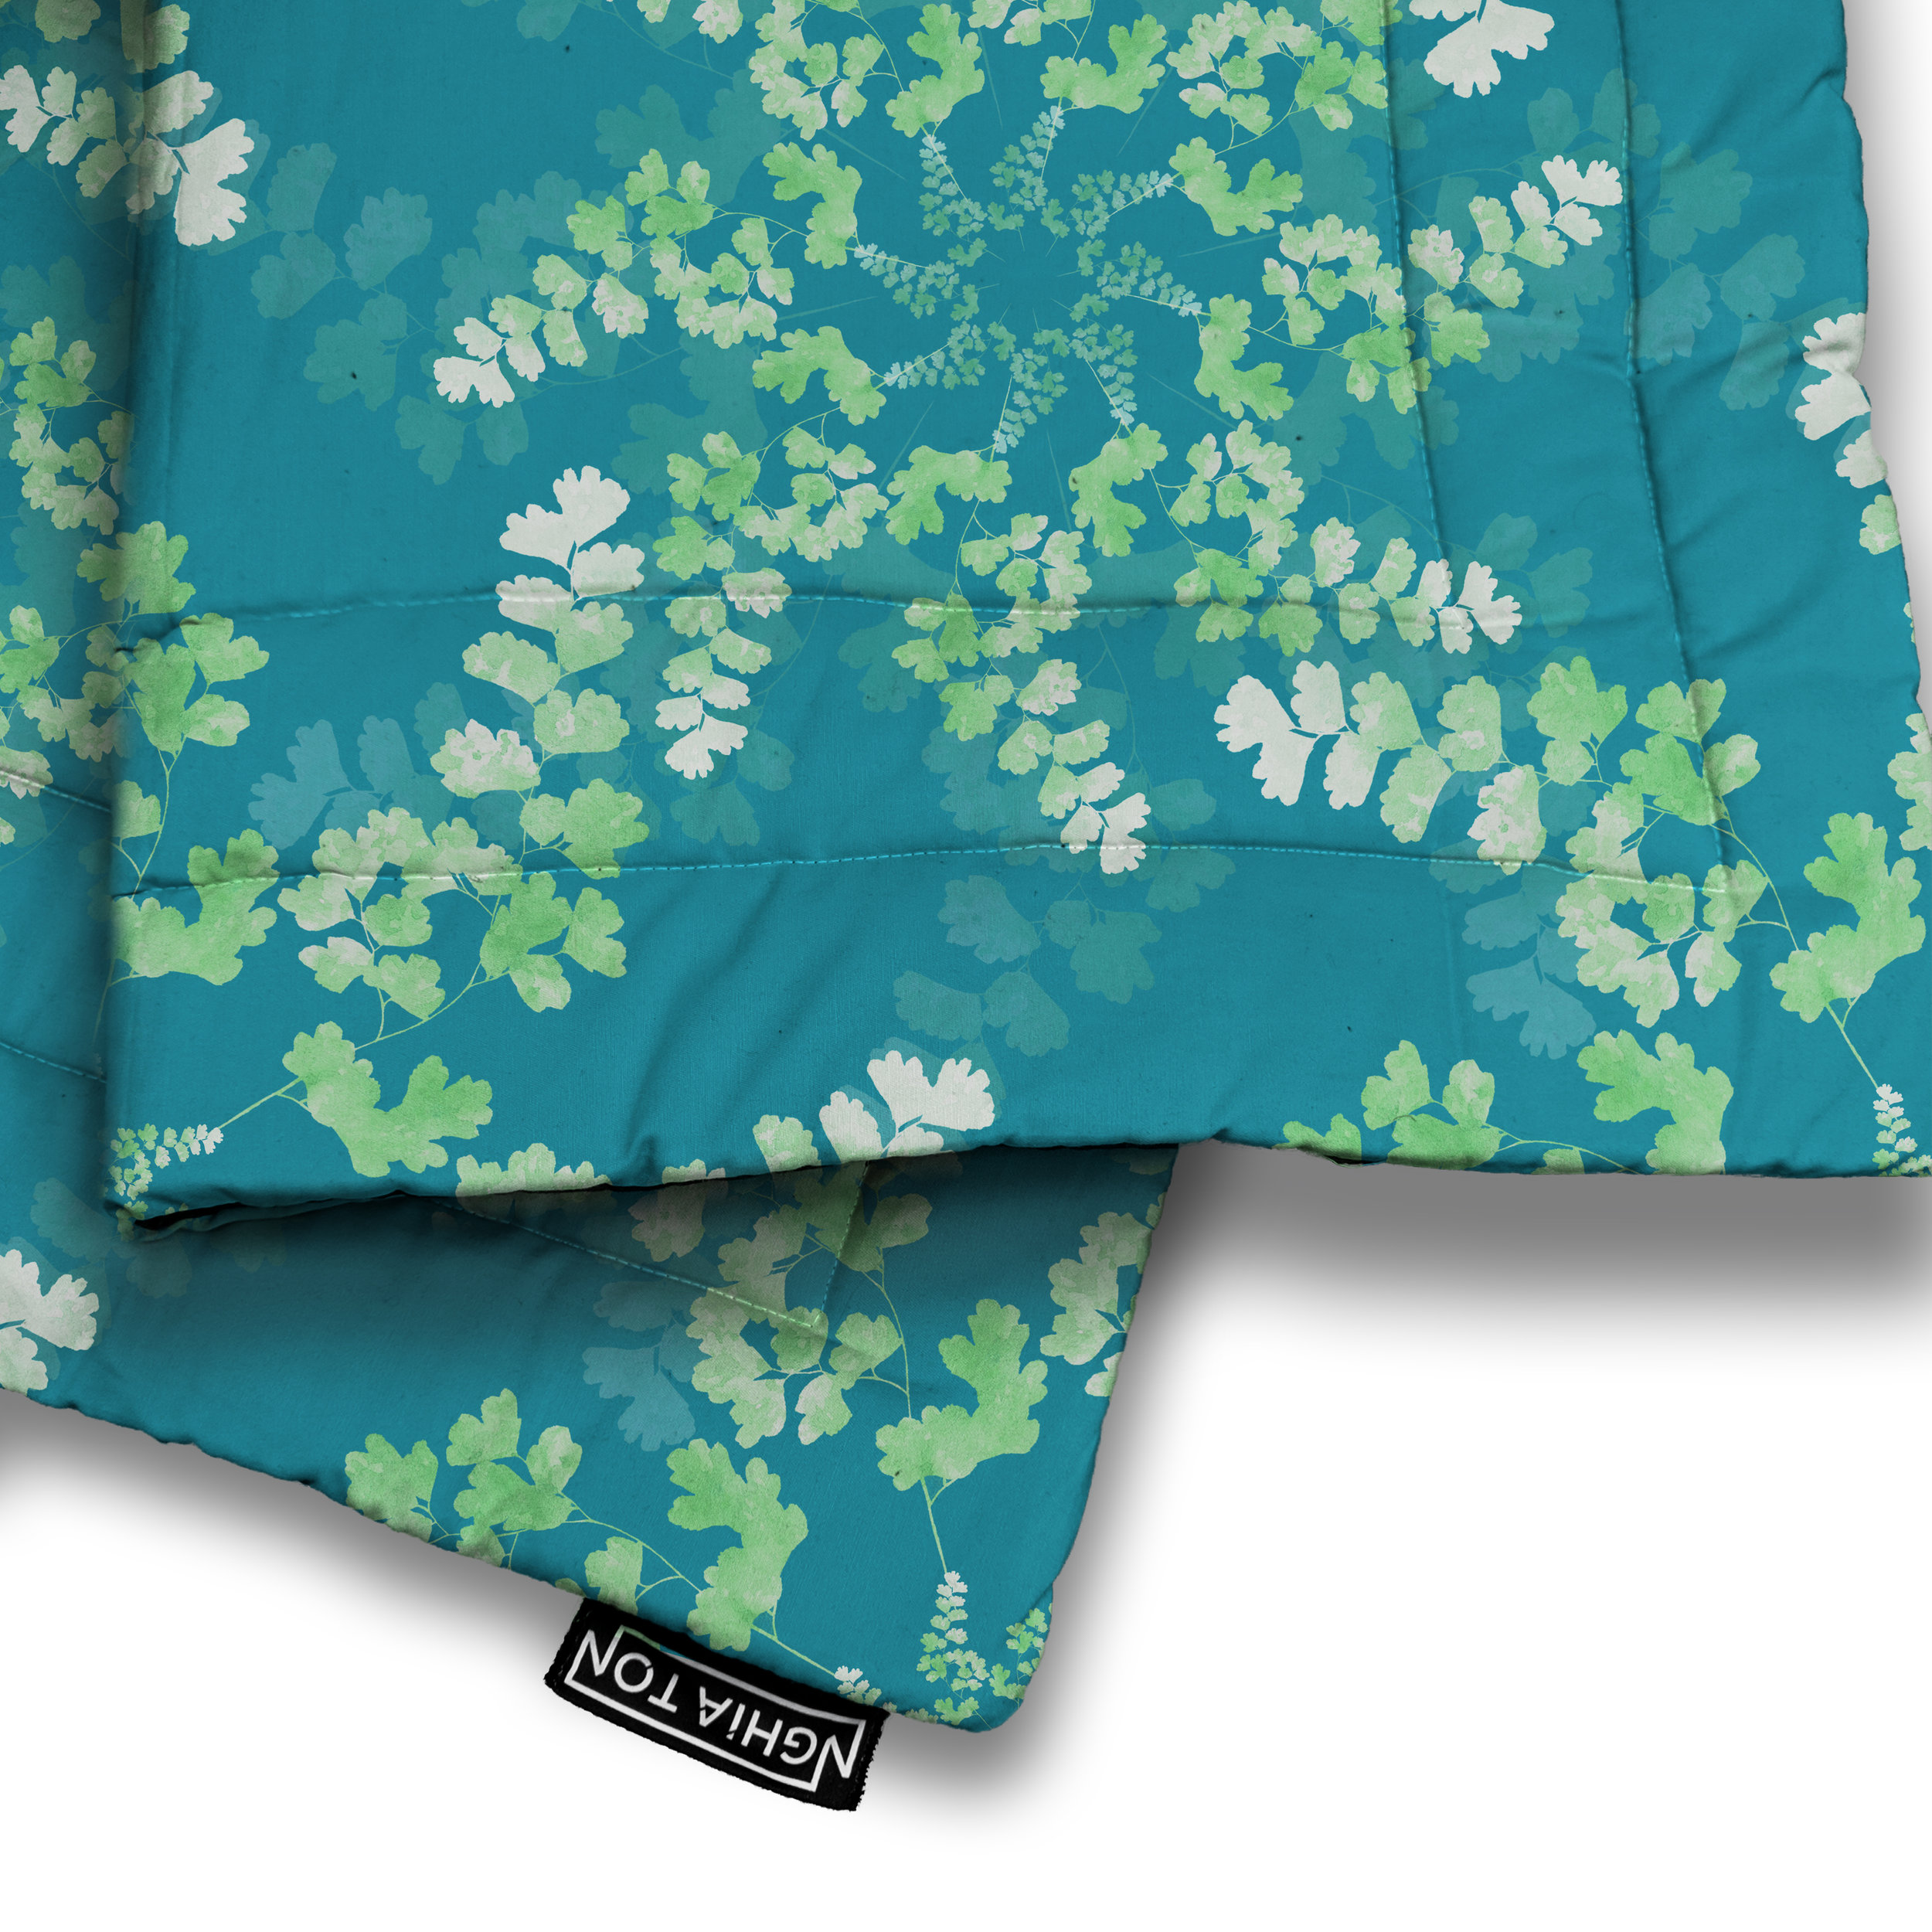 Maidenhair Fern Quilted Blanket from £58